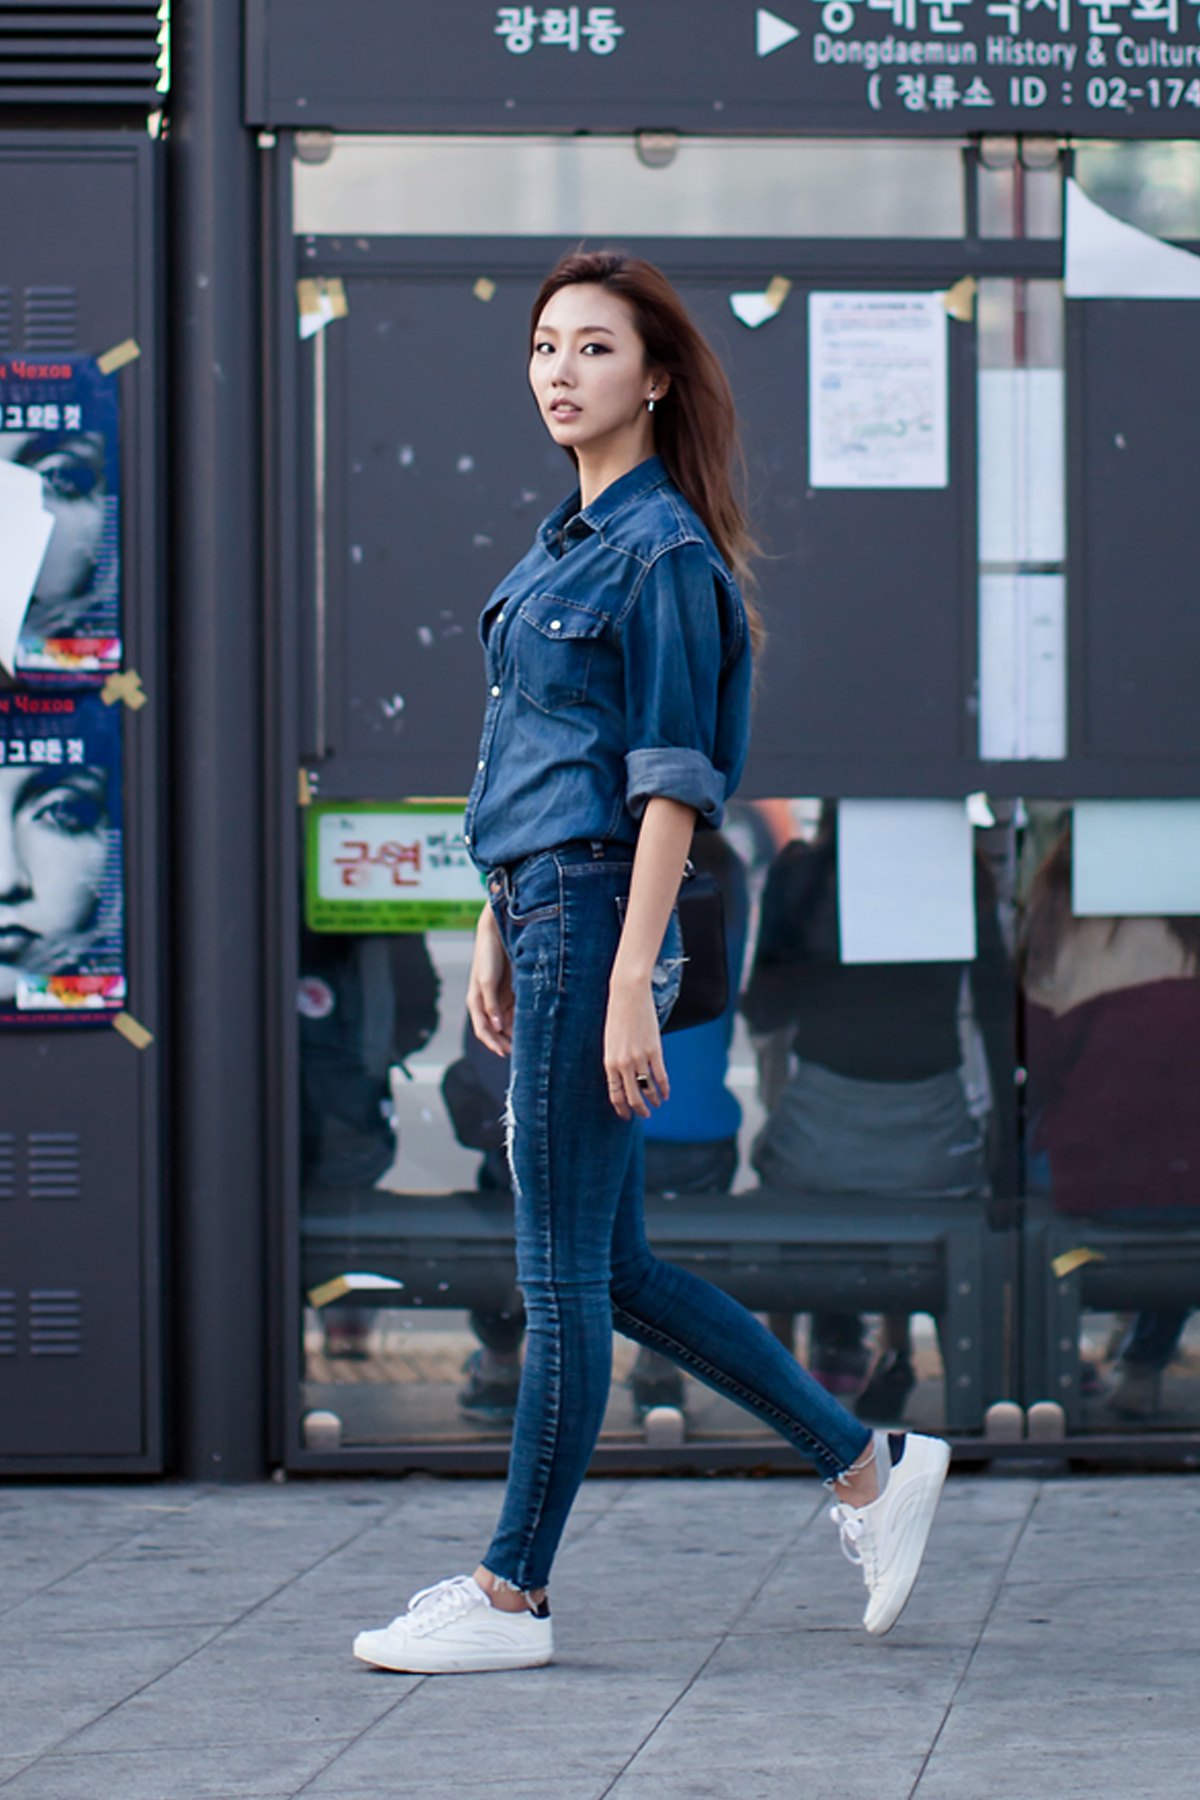 On the street… Jang Naeri Seoul fashion week 2016 SS